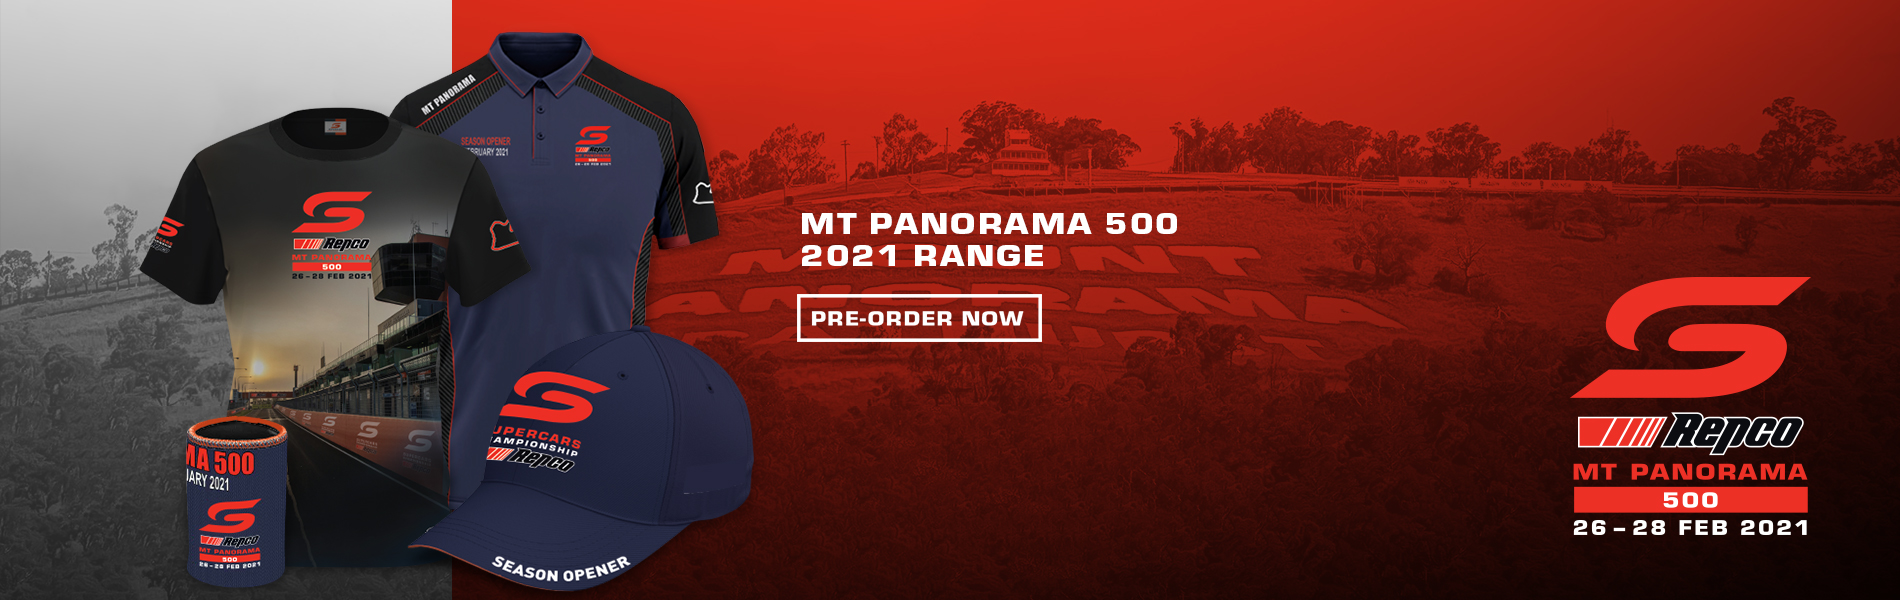 Mount-Panorama-500-homepage-banner